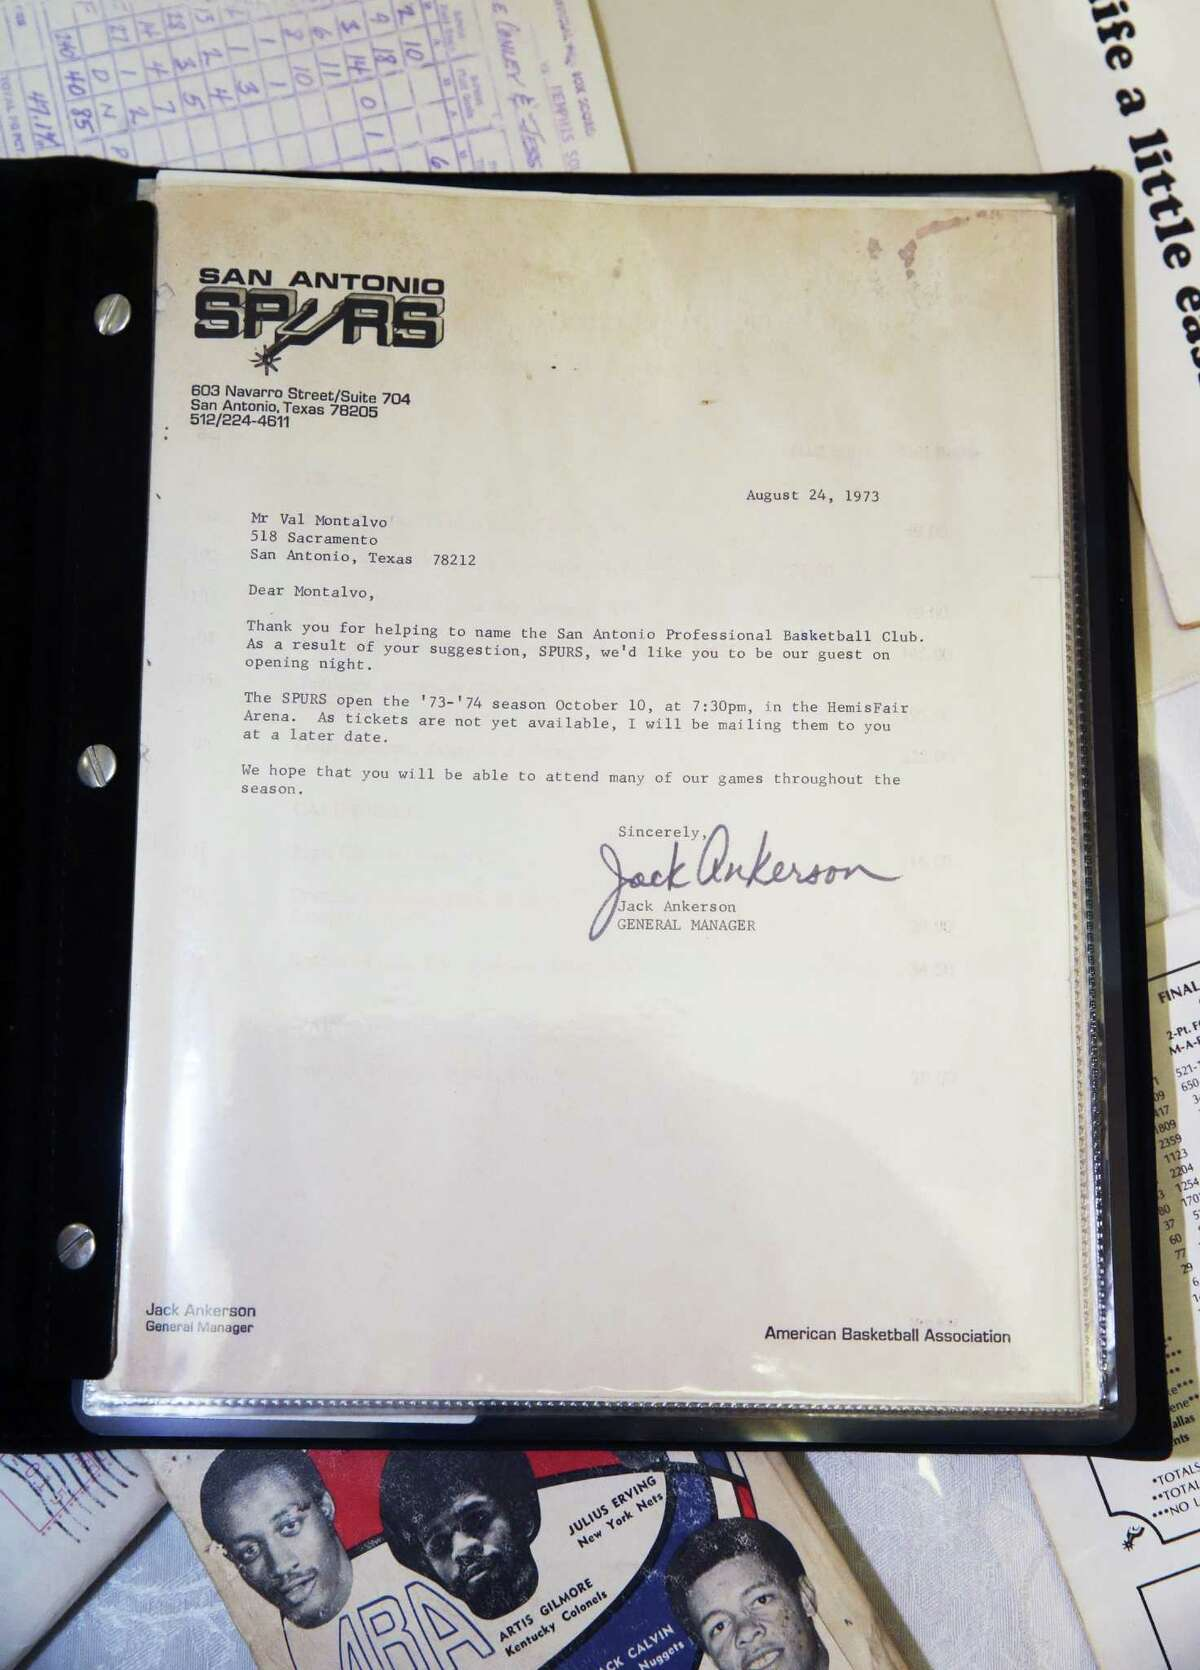 Letter sent to the late Val Montalvo informing he was the winner of S.A.'s ABA name-the-team contest.